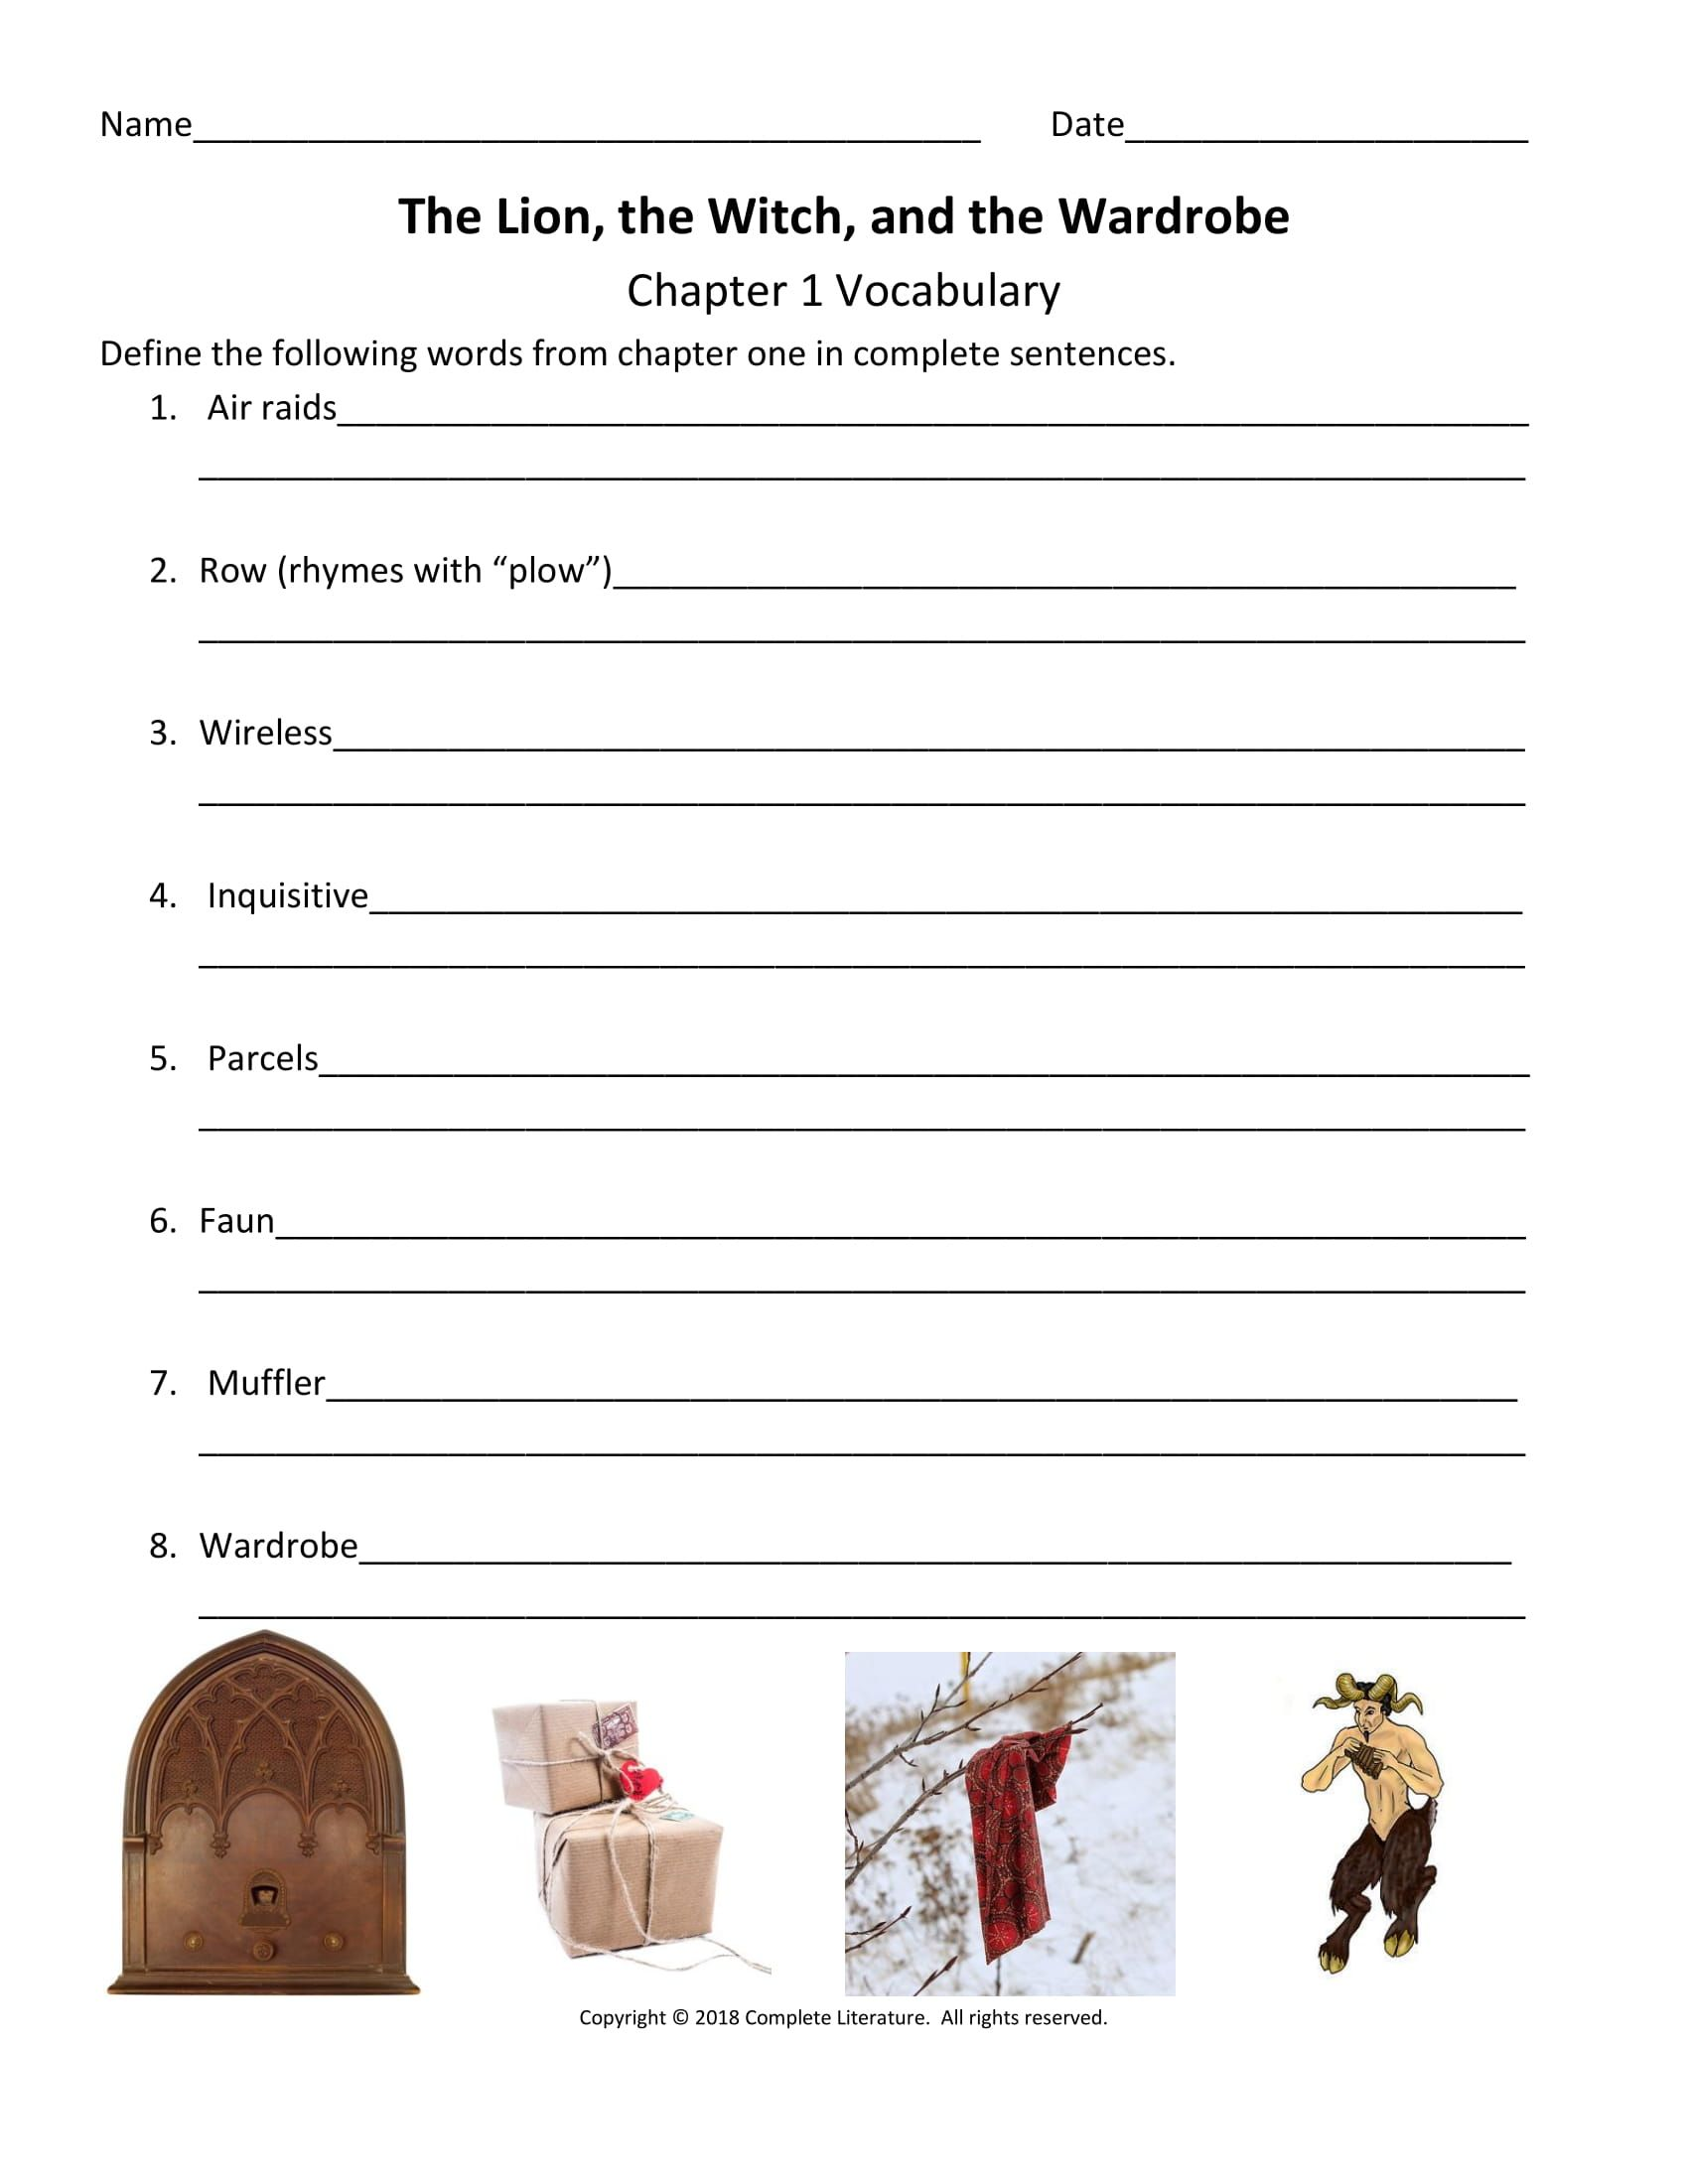 Chapter 1 Vocabulary The Lion The Witch And The